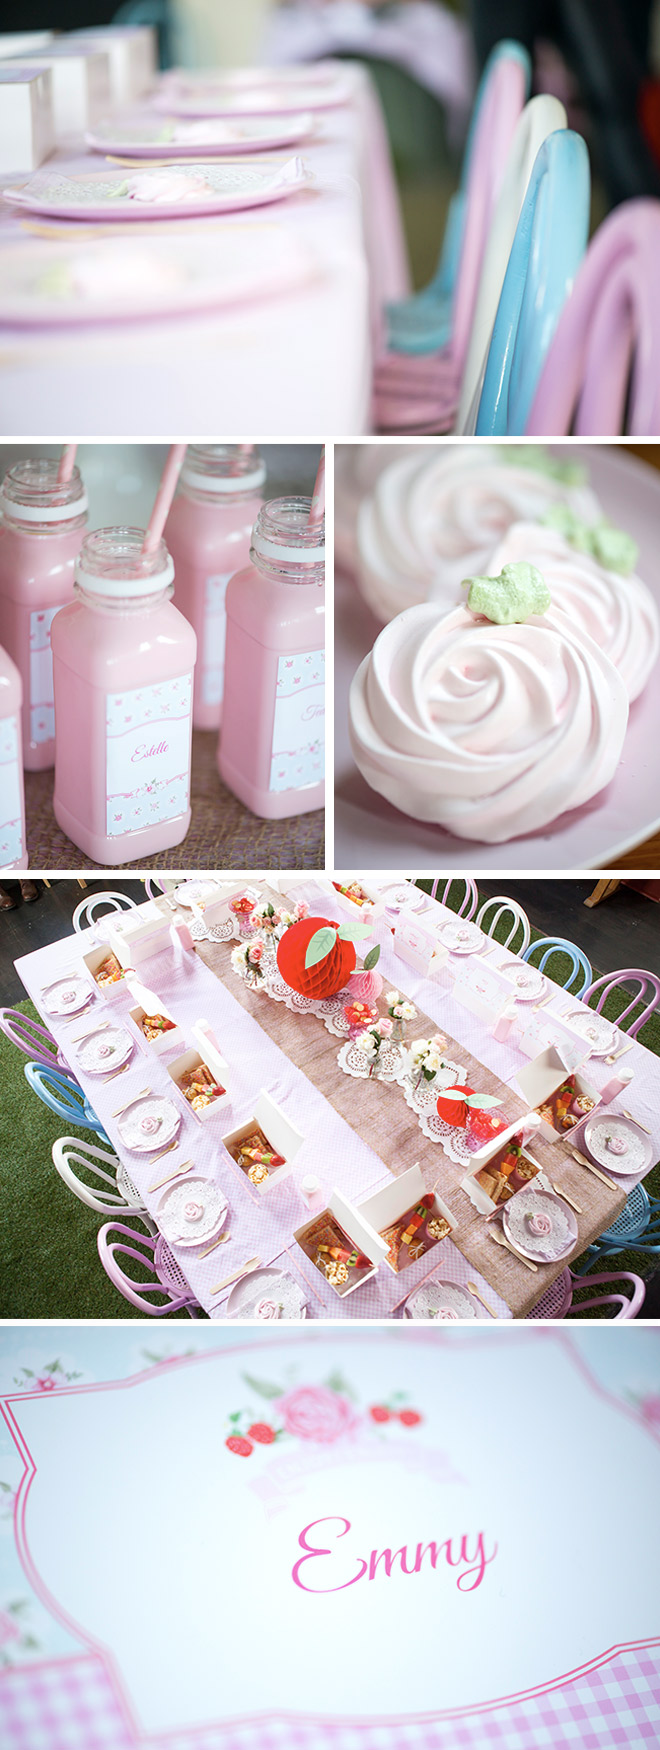 Strawberry themed birthday party love jk sweet strawberry party dessert table ideas with personalised drink bottles sweet meringues and personalised forumfinder Gallery